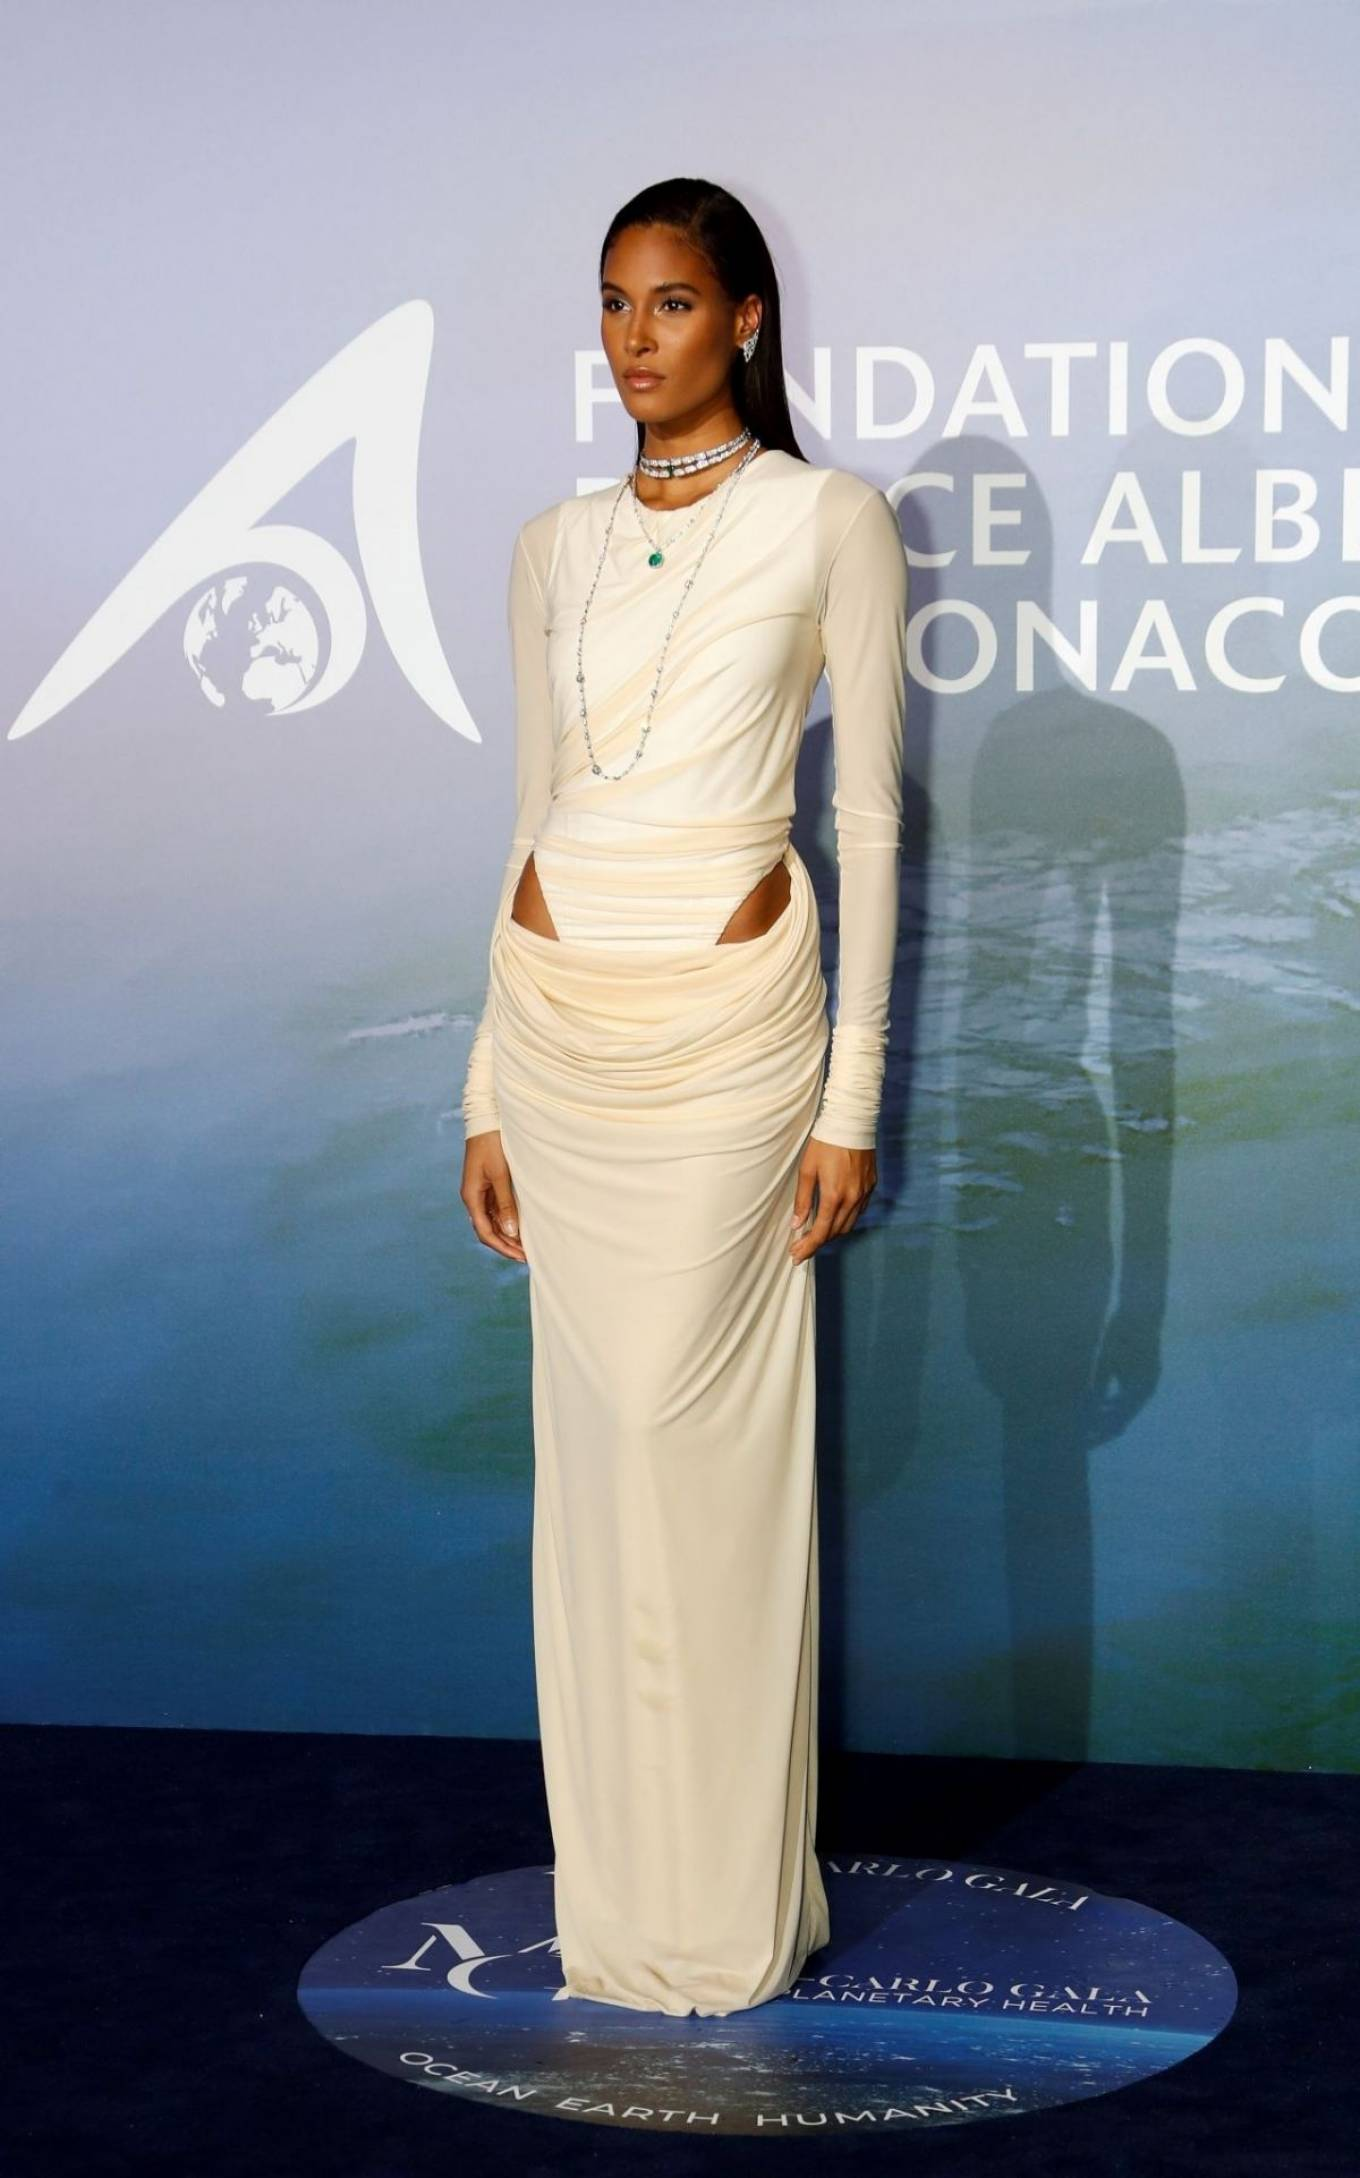 Cindy Bruna wearing a Slouchy off white draped maxi dress with full sleeves, asymmetric design, a round neck and drop waist